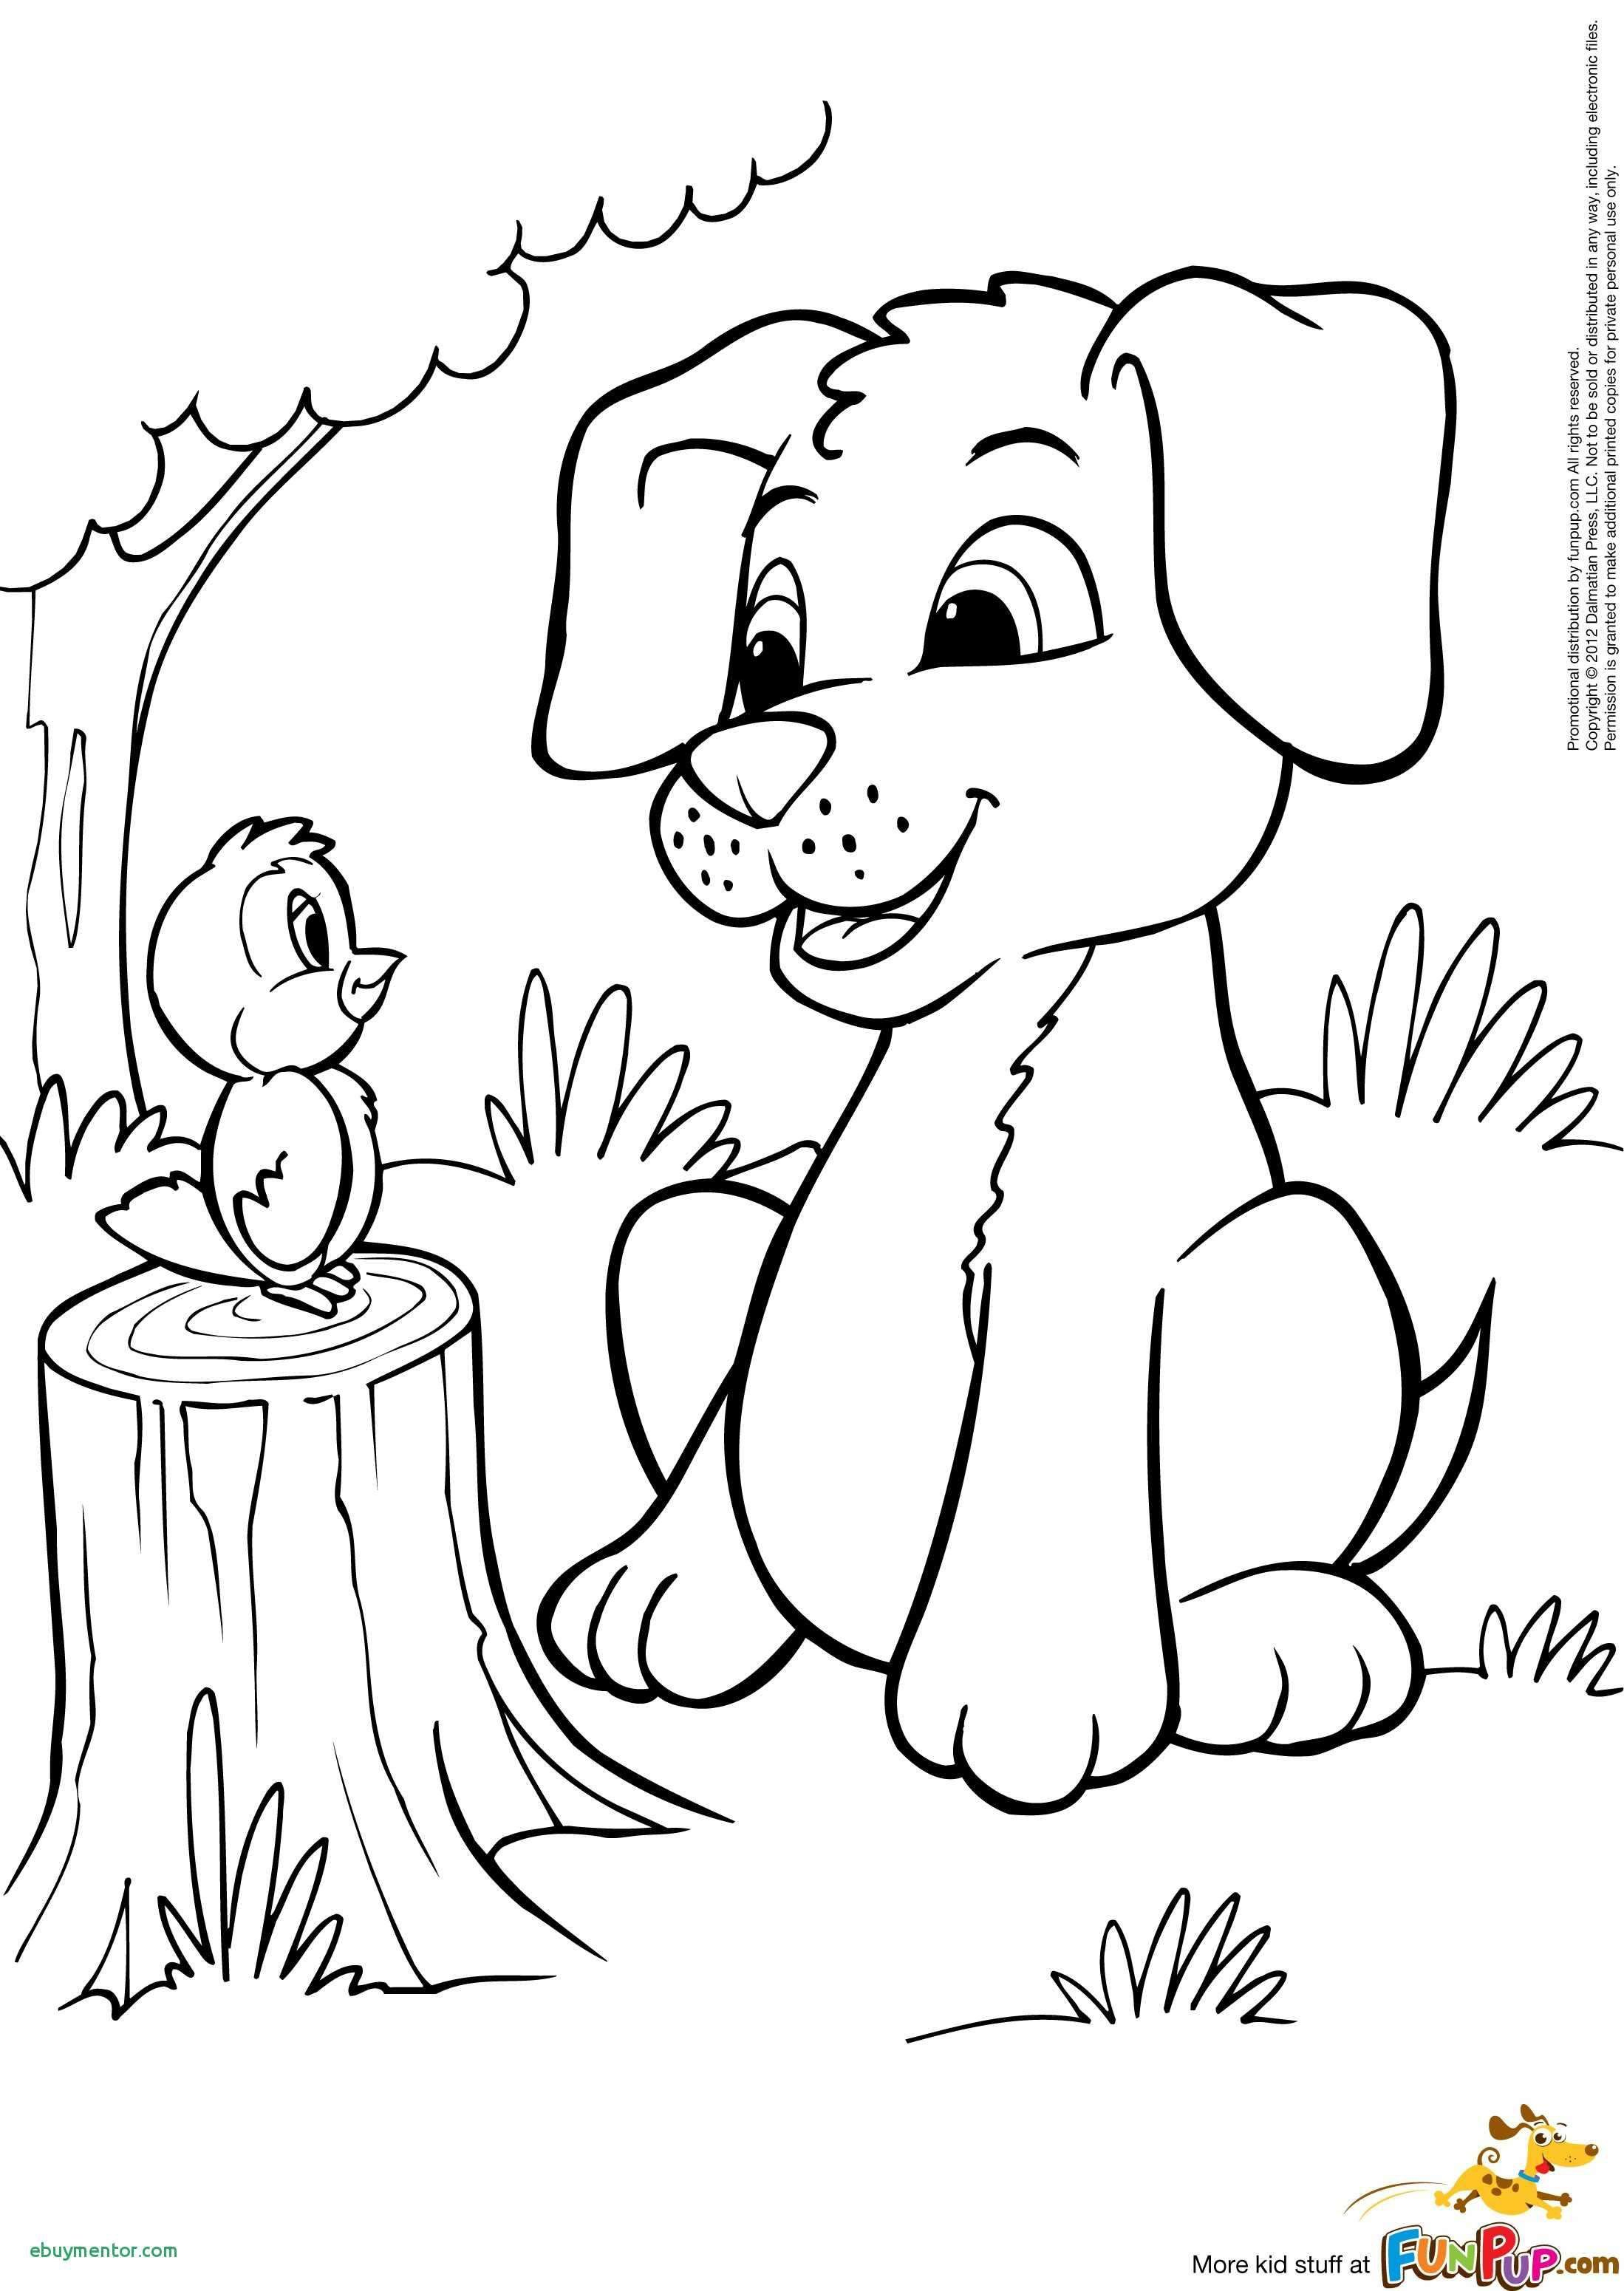 Puppy And Kitten Coloring Pages Through The Thousands Of Pictures On The Net About Puppy And K Puppy Coloring Pages Bird Coloring Pages Animal Coloring Pages